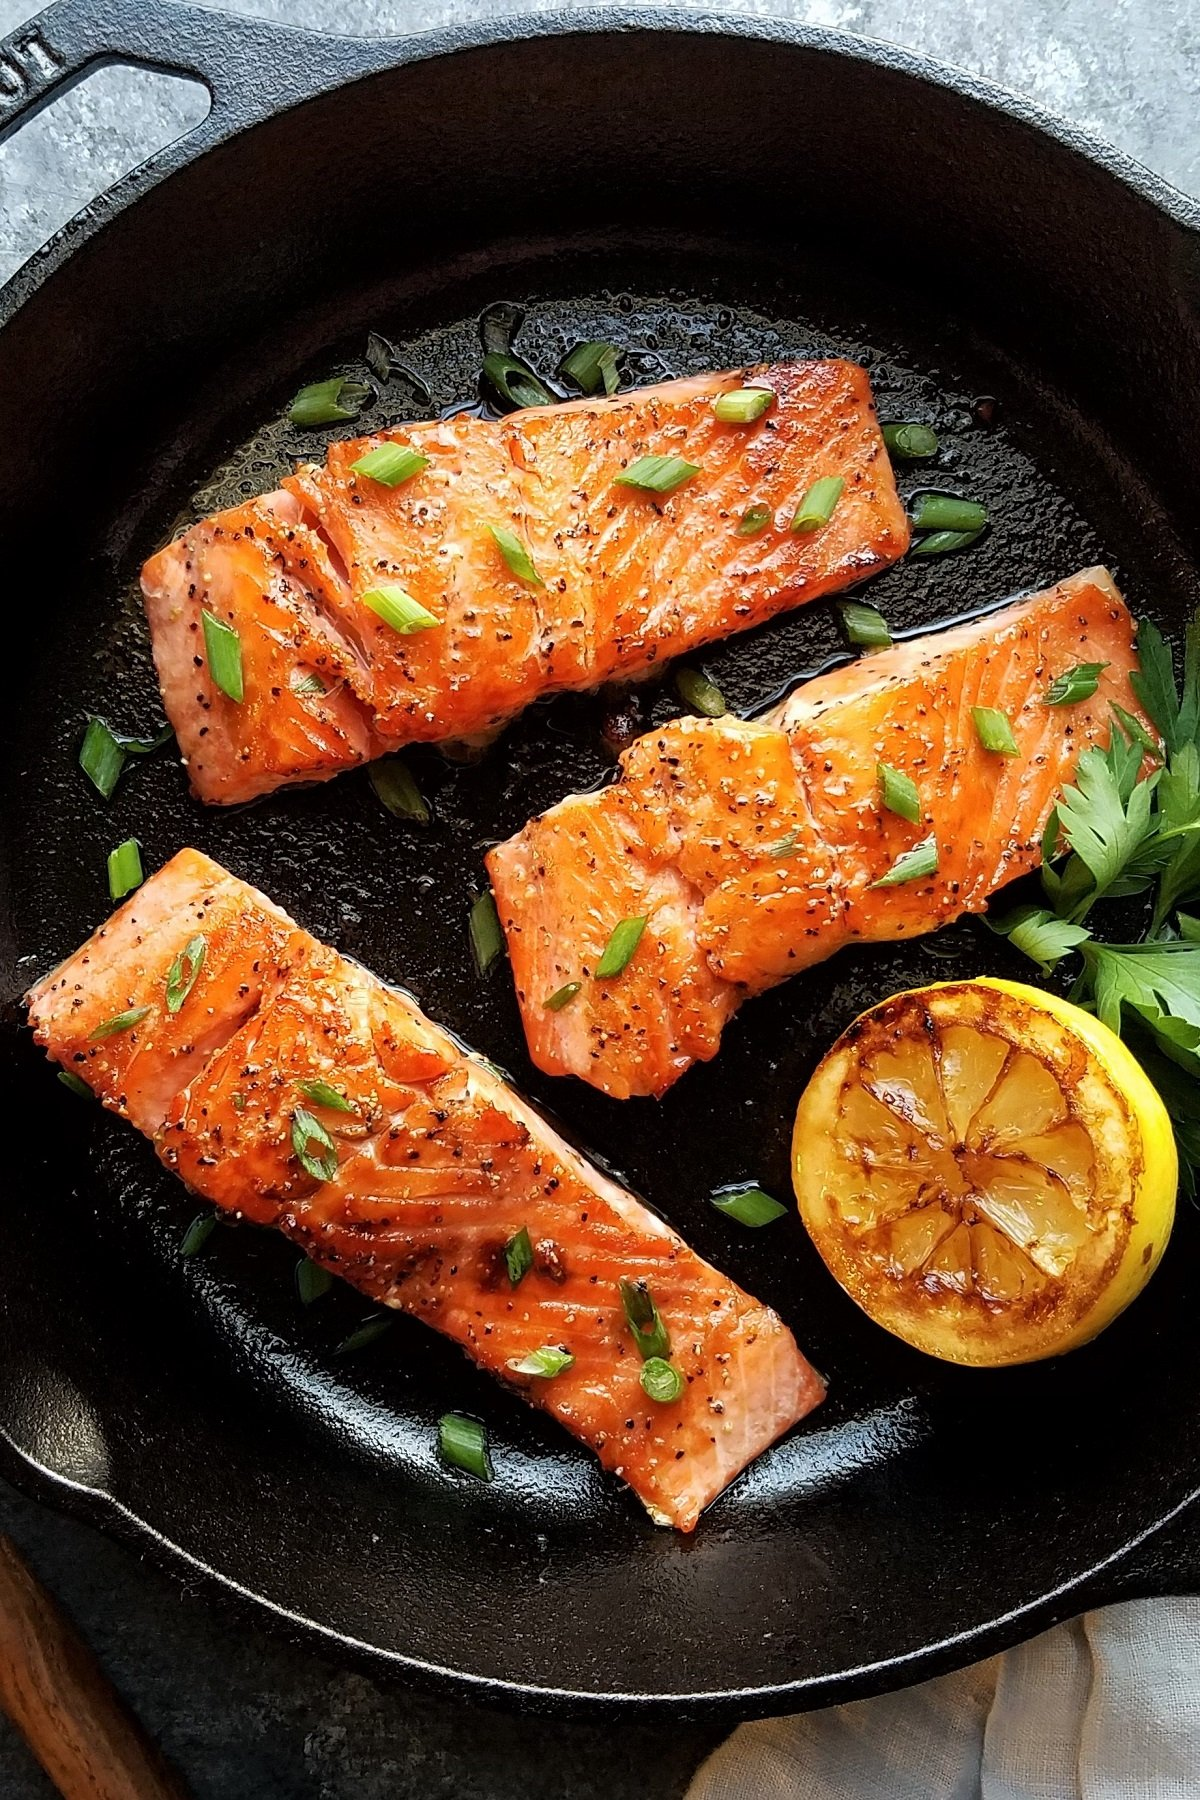 Perfectly seared salmon fillets in cast iron skillet with charred lemon